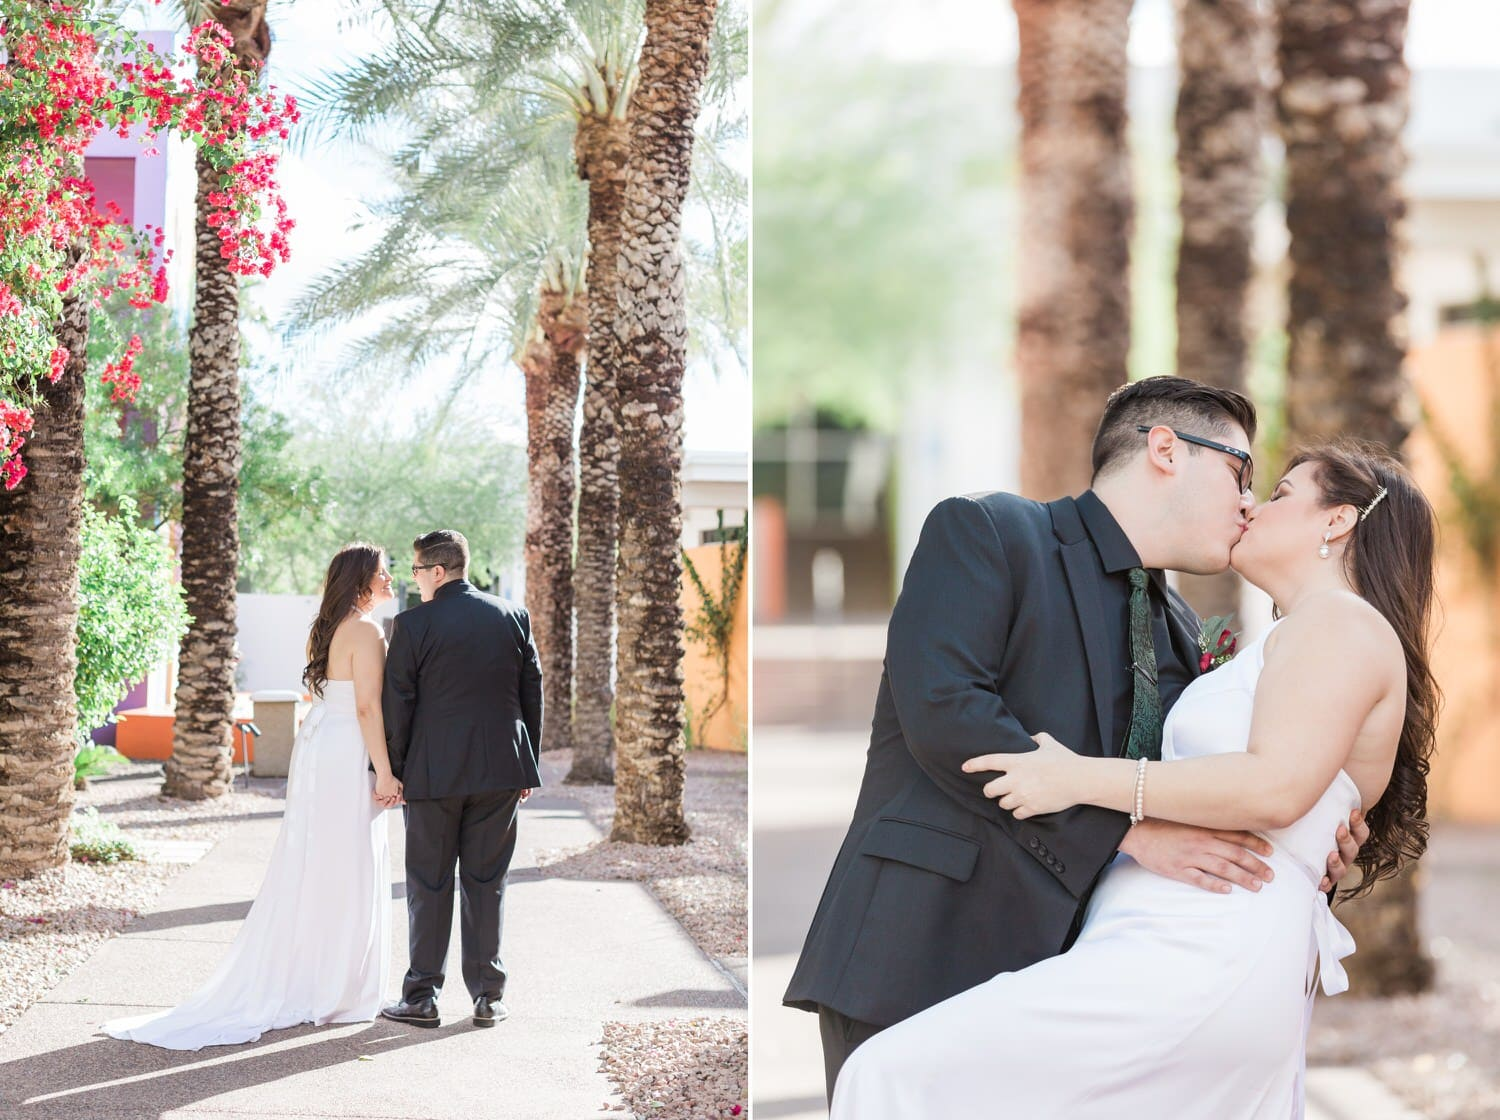 The Saguaro Wedding